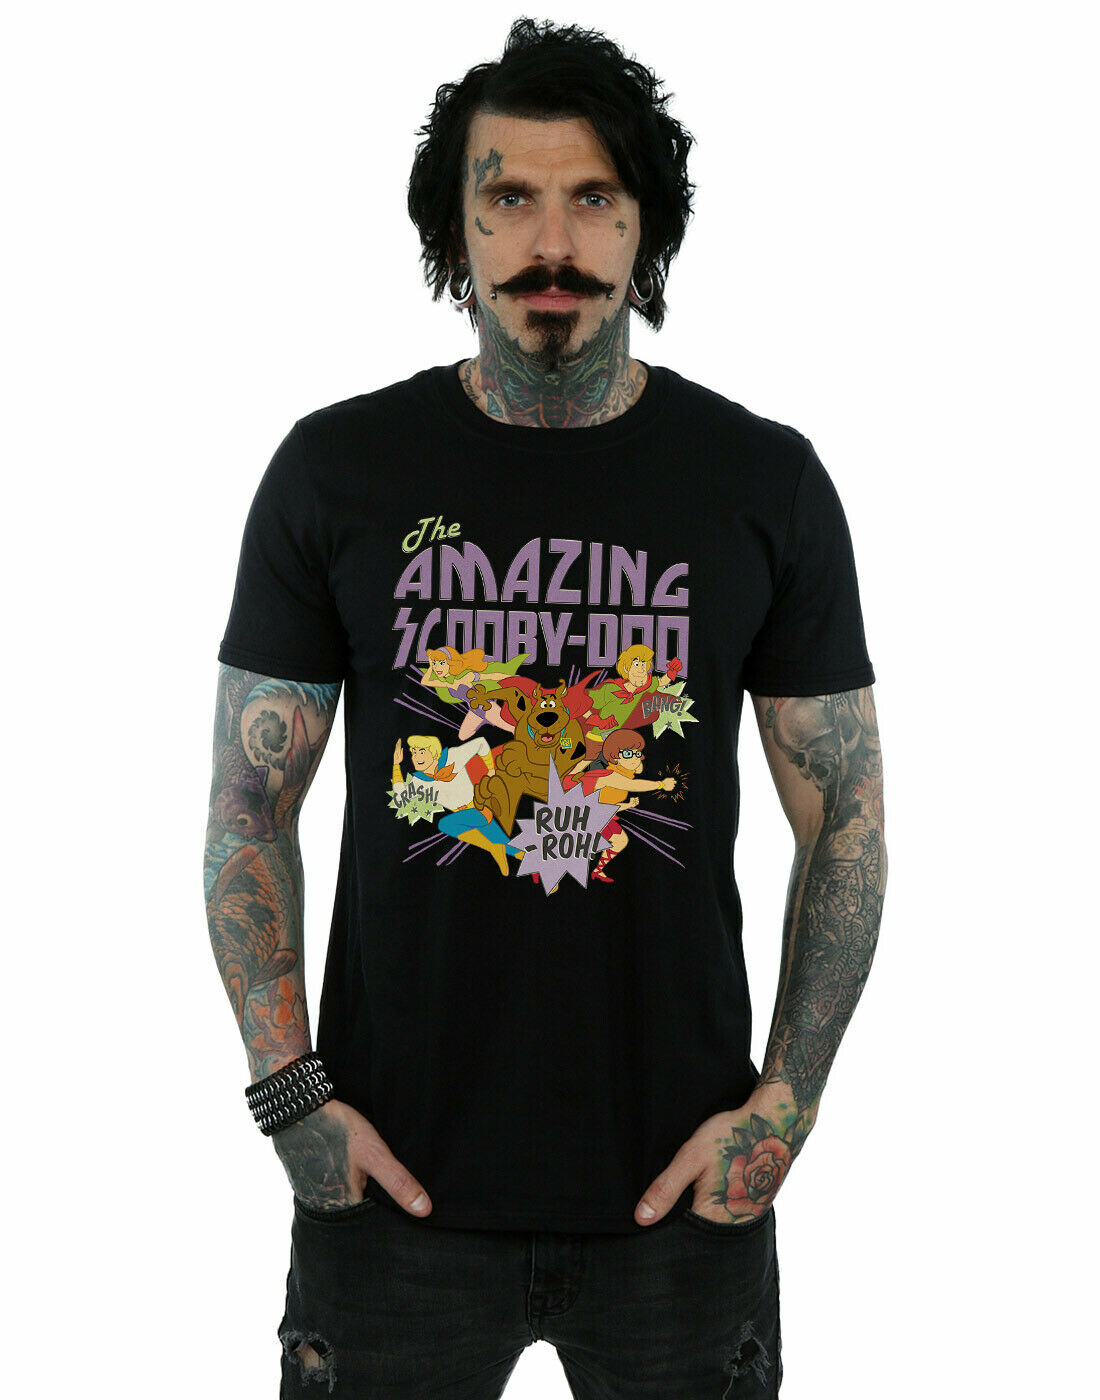 Scooby Dumens amazing Scooby t24676 T-Shirt New Super fire creative retro printing and dyeing short sleeve trend